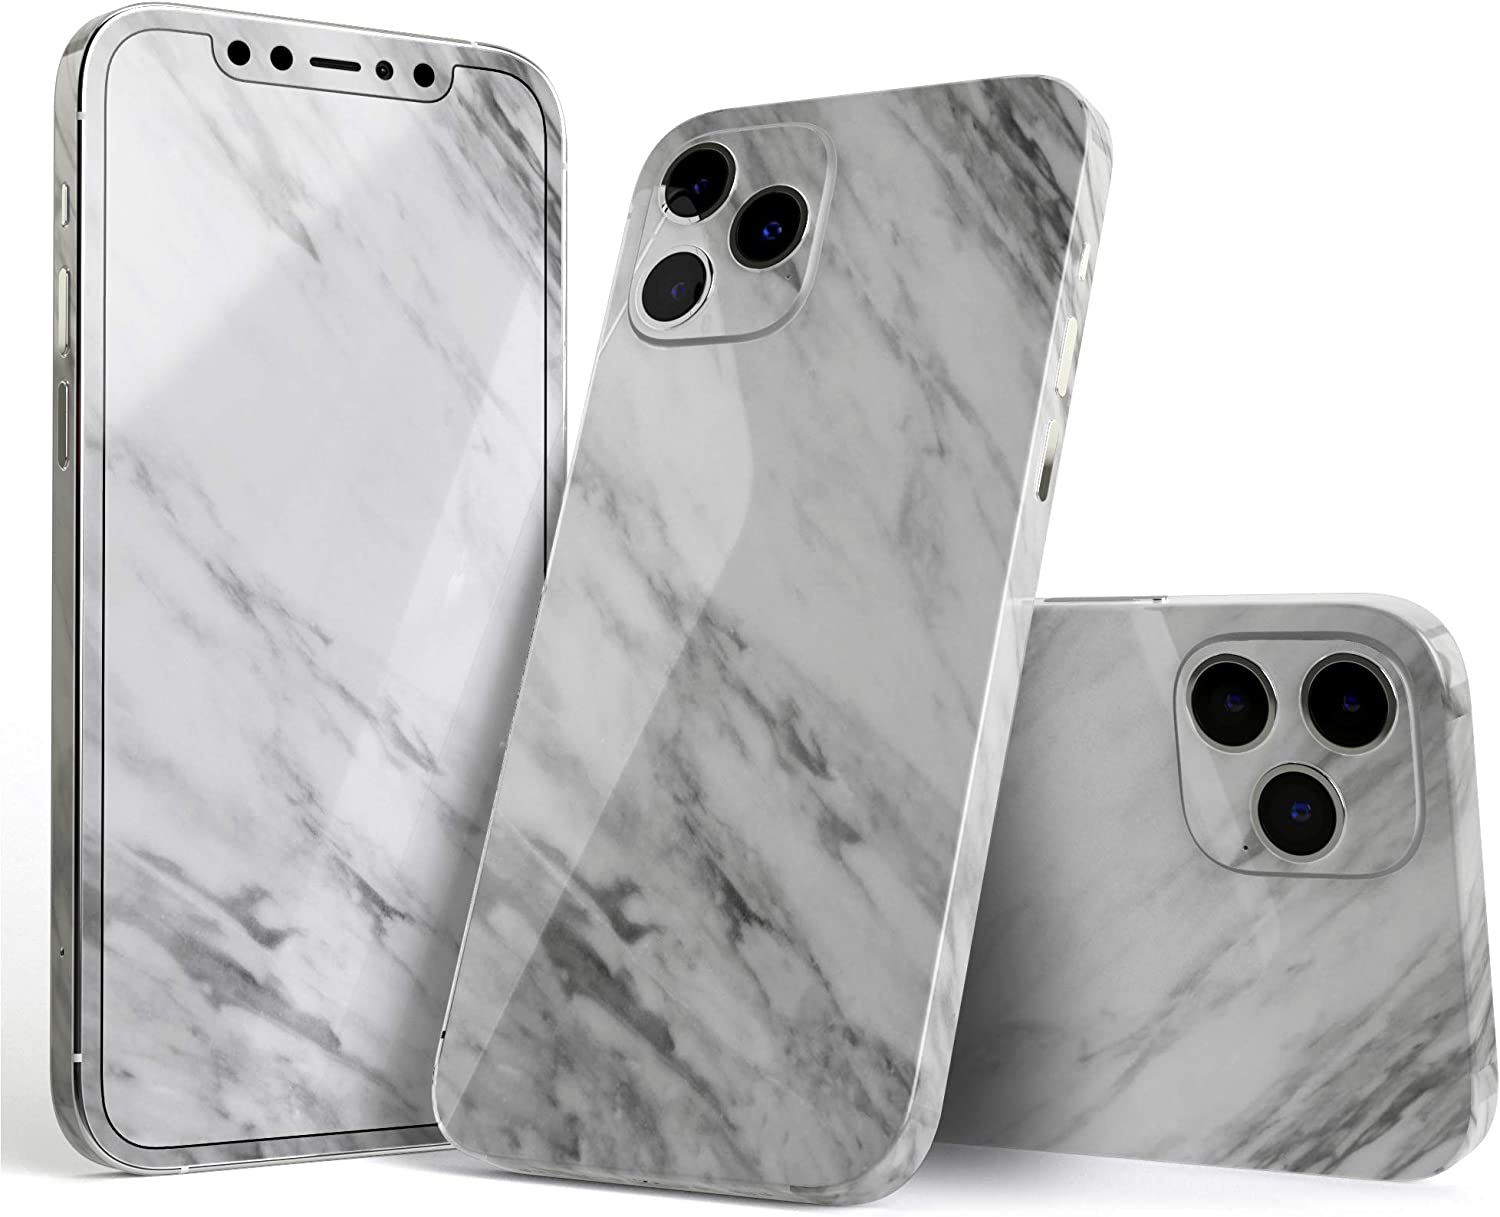 Design Skinz Slate Marble Surface V10 Full Body Skin Decal Wrap Kit Compatible with Apple iPhone X/XS (Screen Trim & Back Skin)